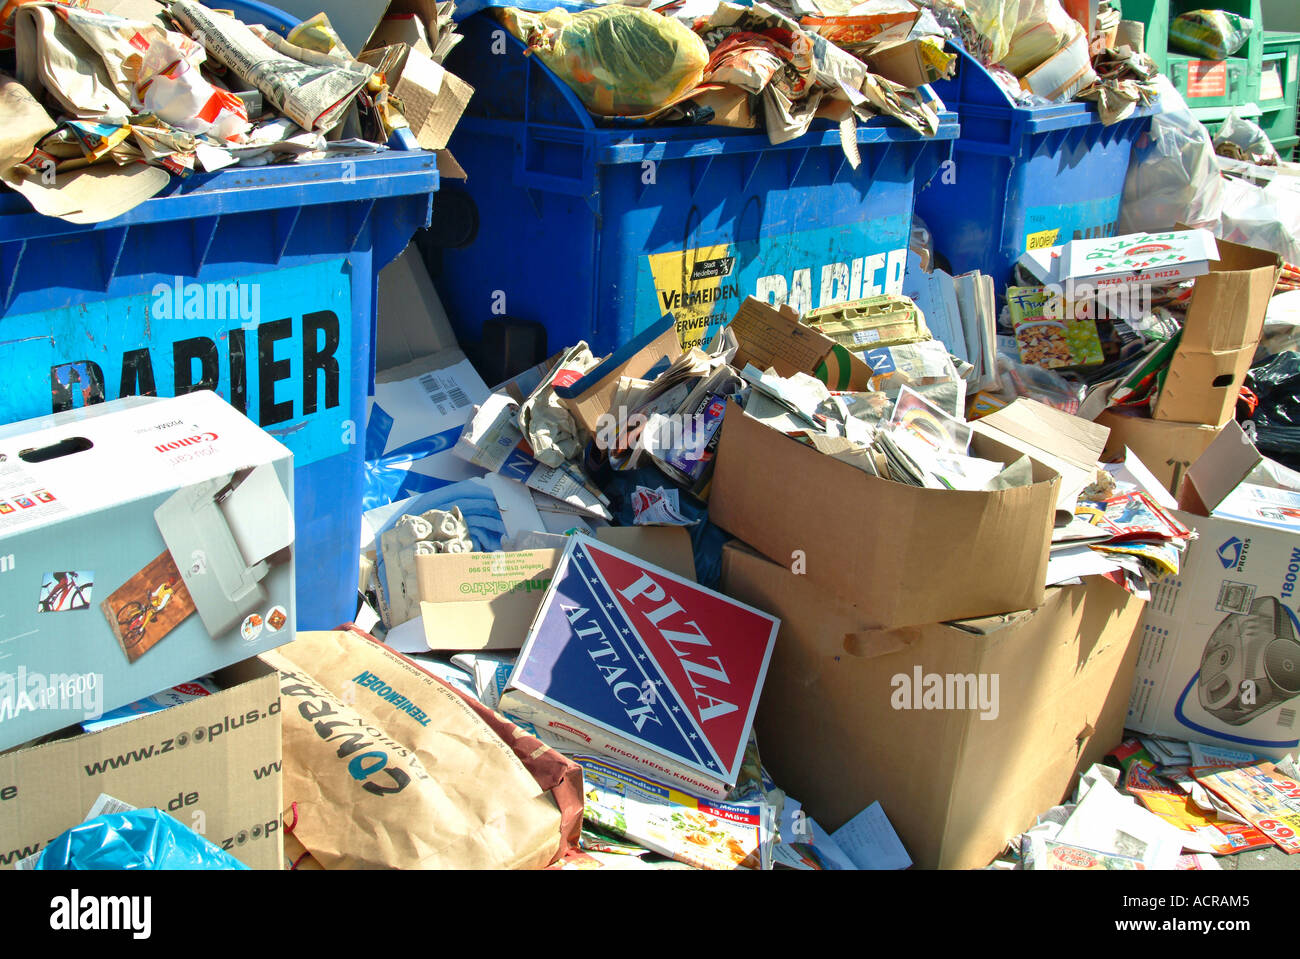 cramped container for recycling paper Überfüllter Altpapiercontainer Stock Photo